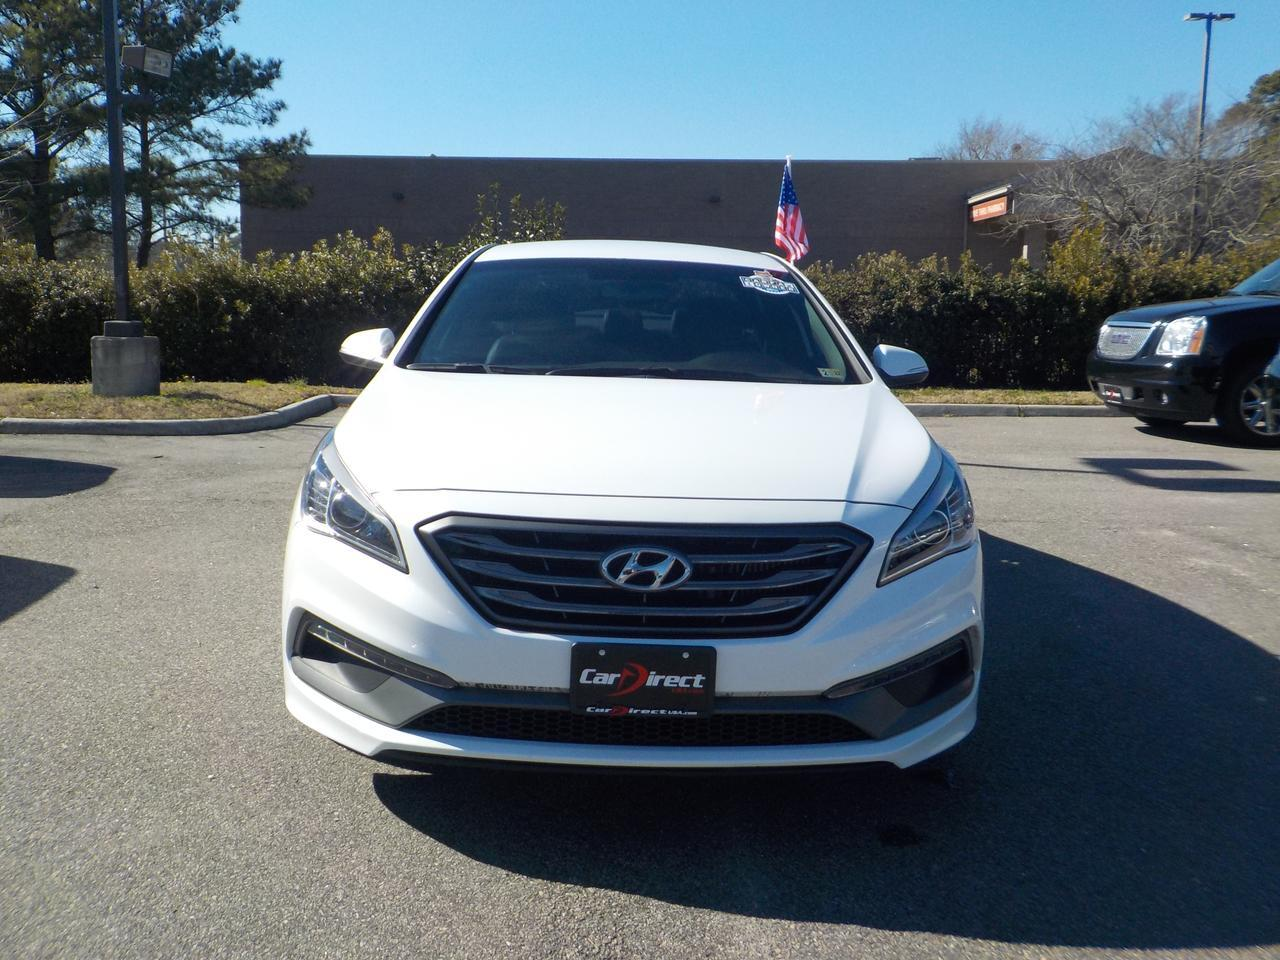 2017 HYUNDAI SONATA SPORT 2.0T, ONE OWNER, LEATHER HEATED SEATS, BLUETOOTH, BACKUP CAMERA, ONLY 46K MILES! Virginia Beach VA